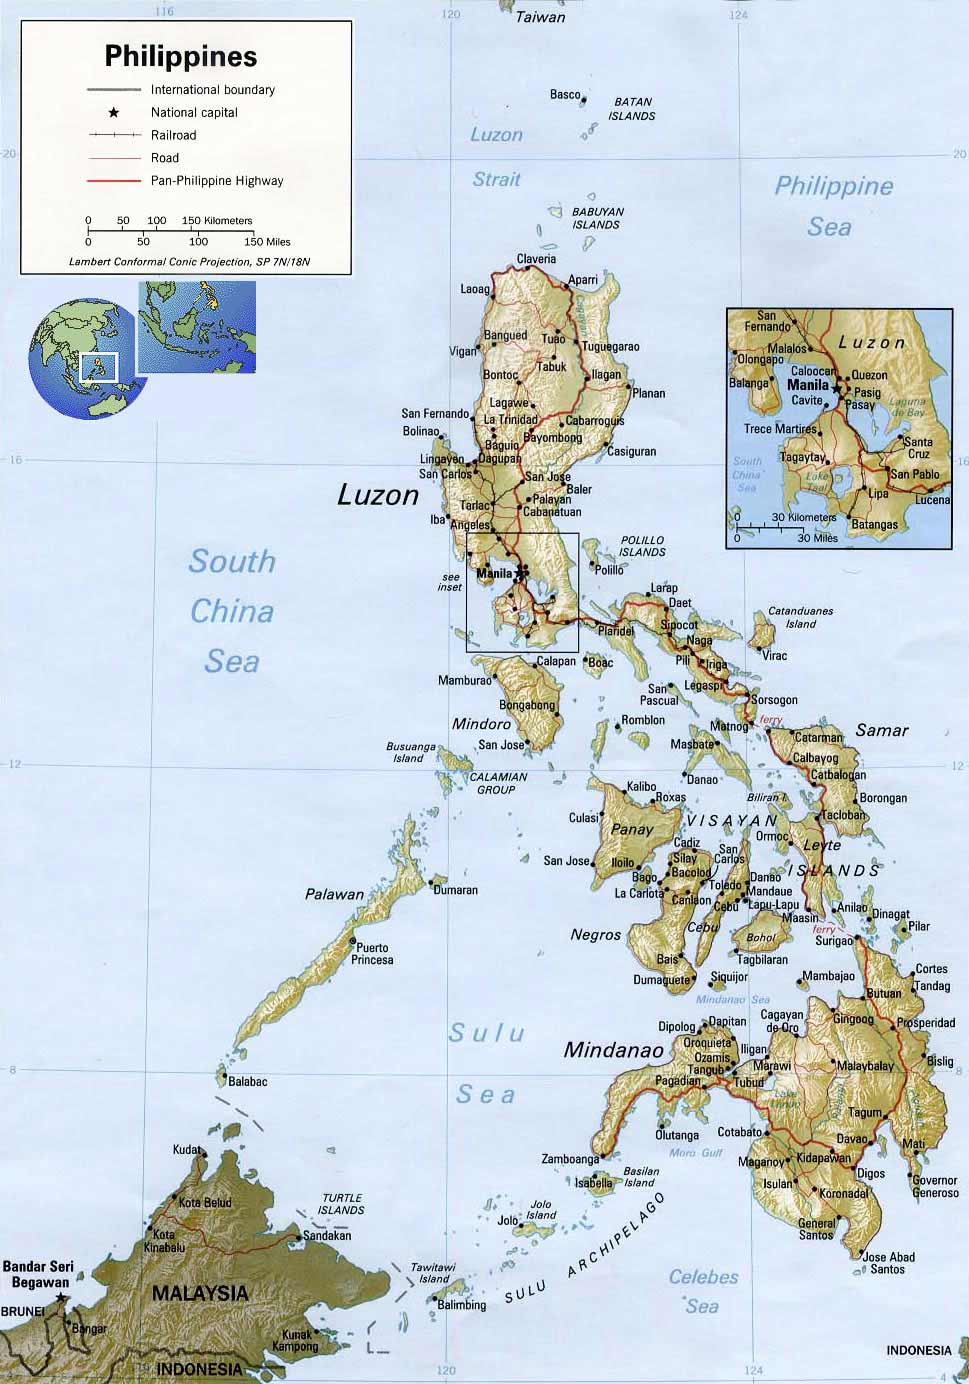 Philippines 3 large map